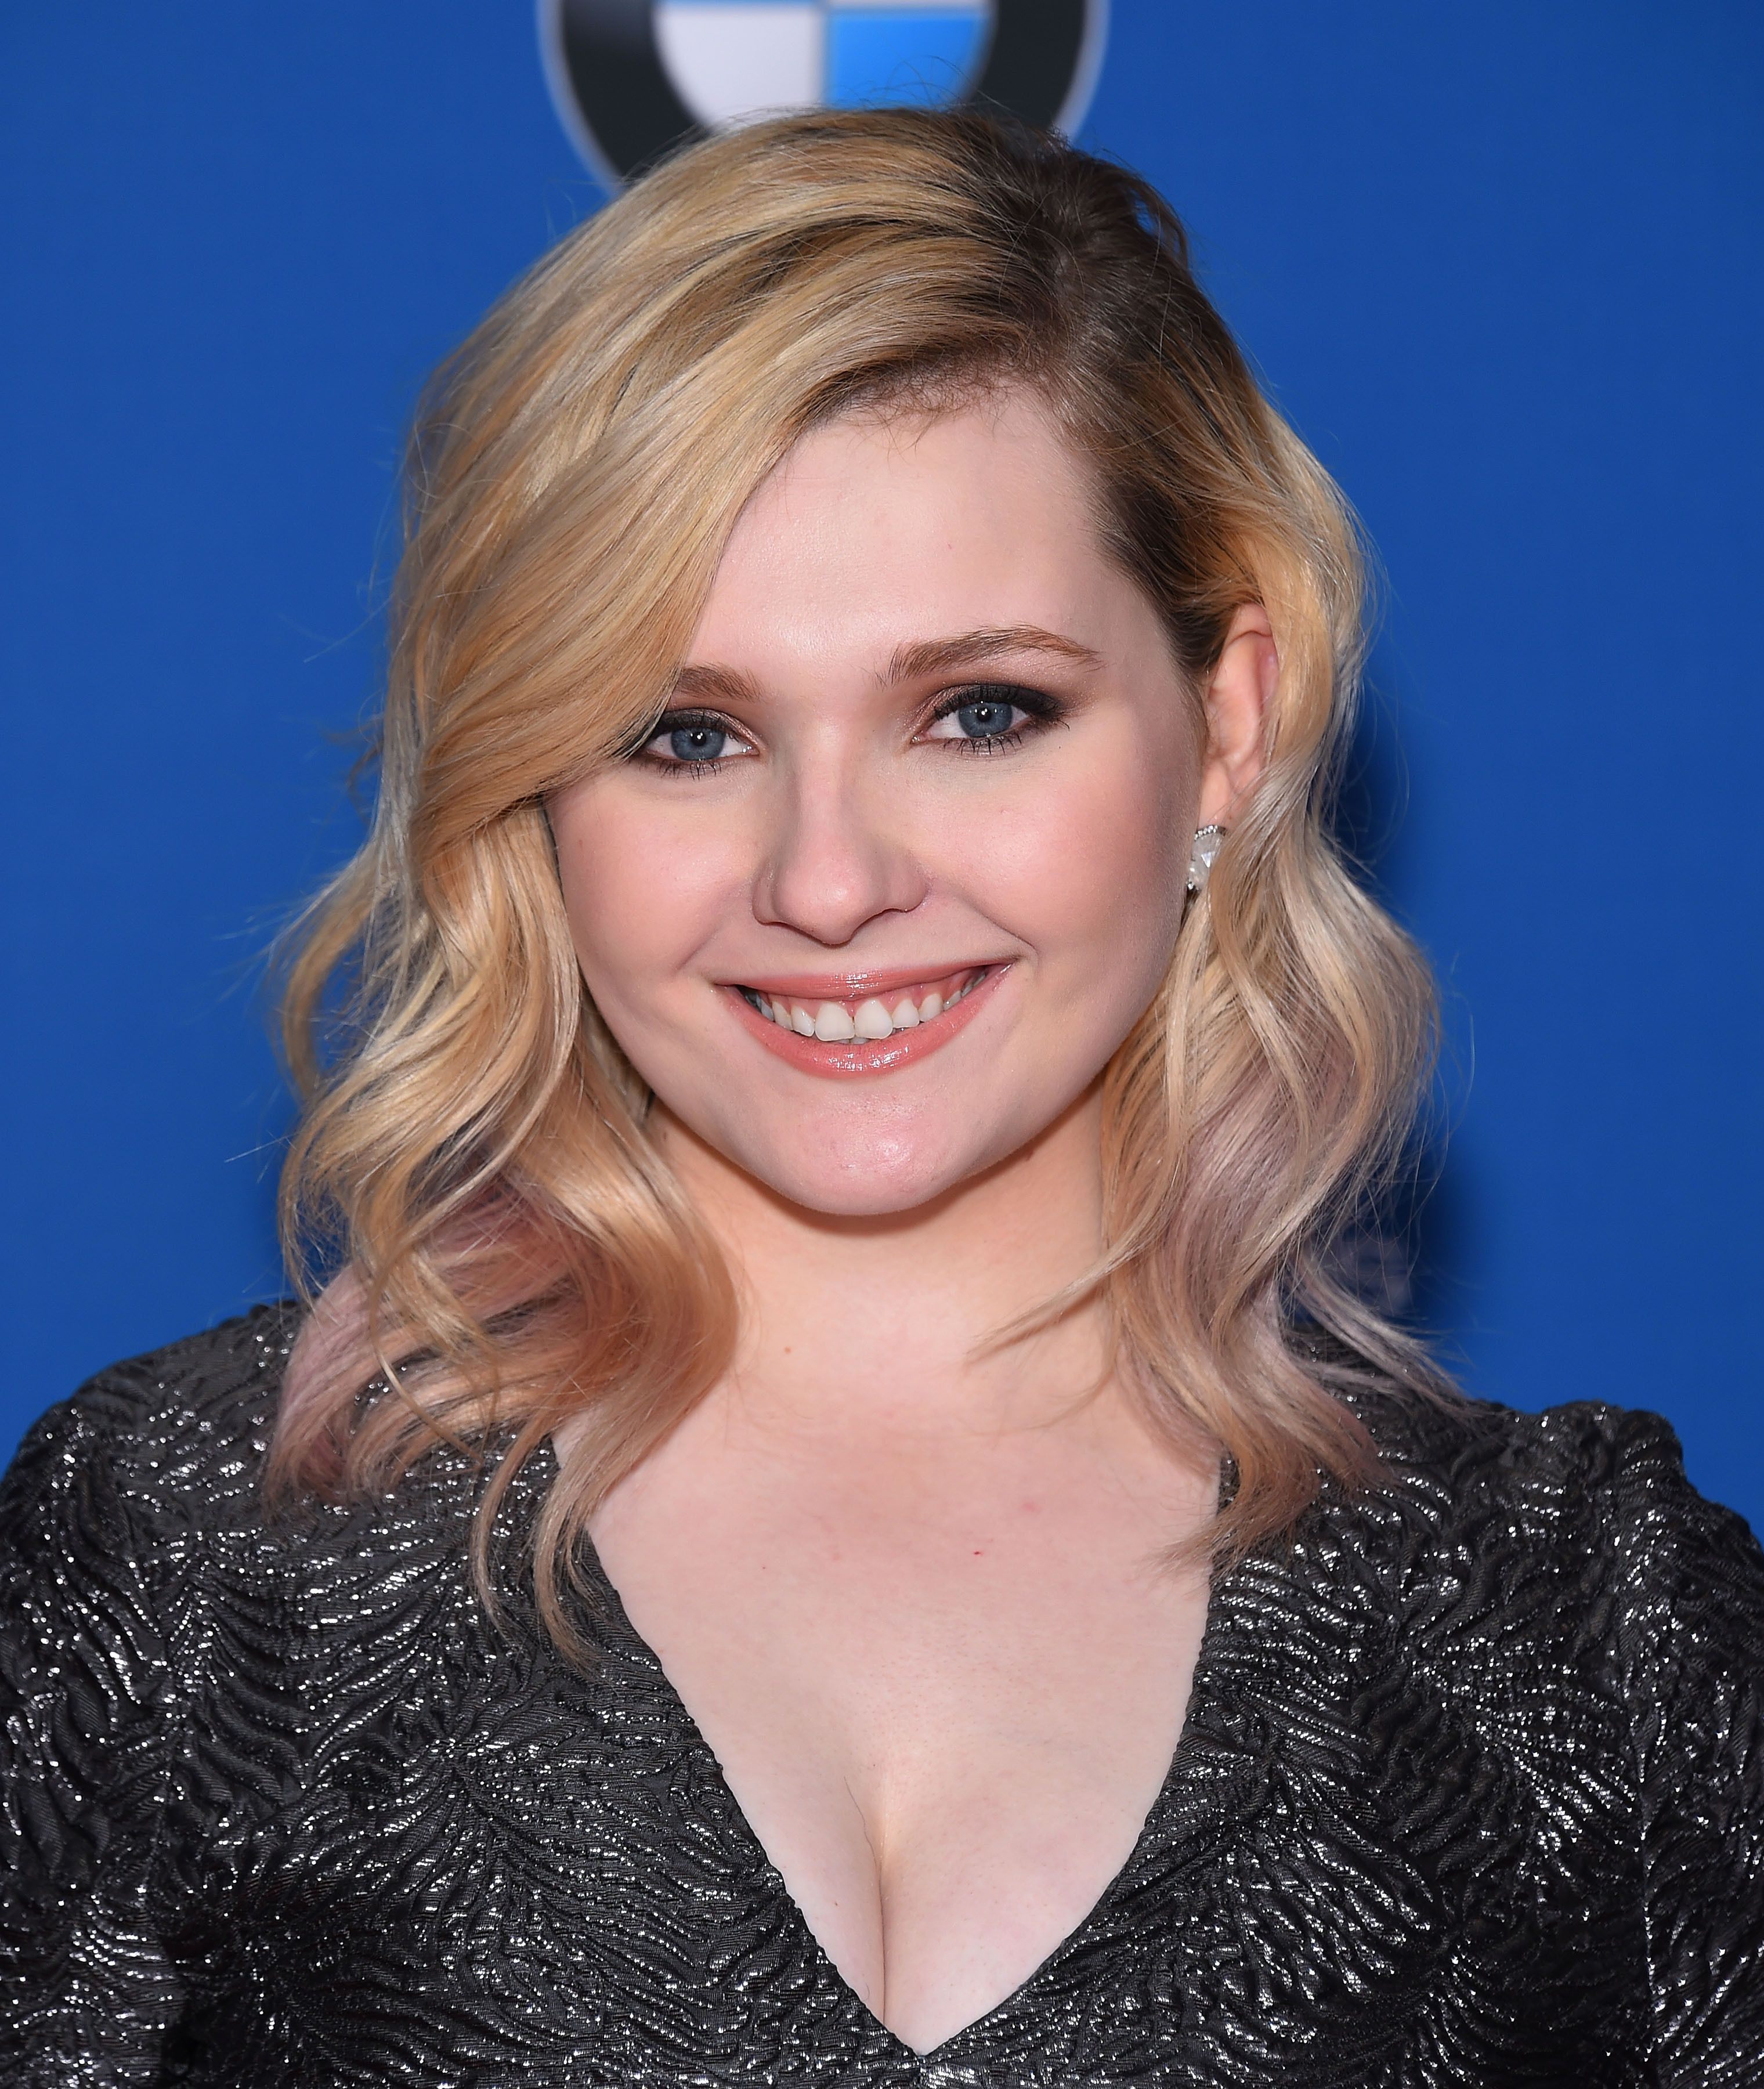 Abigail Breslin smiles as she shows off wavy blonde hair.